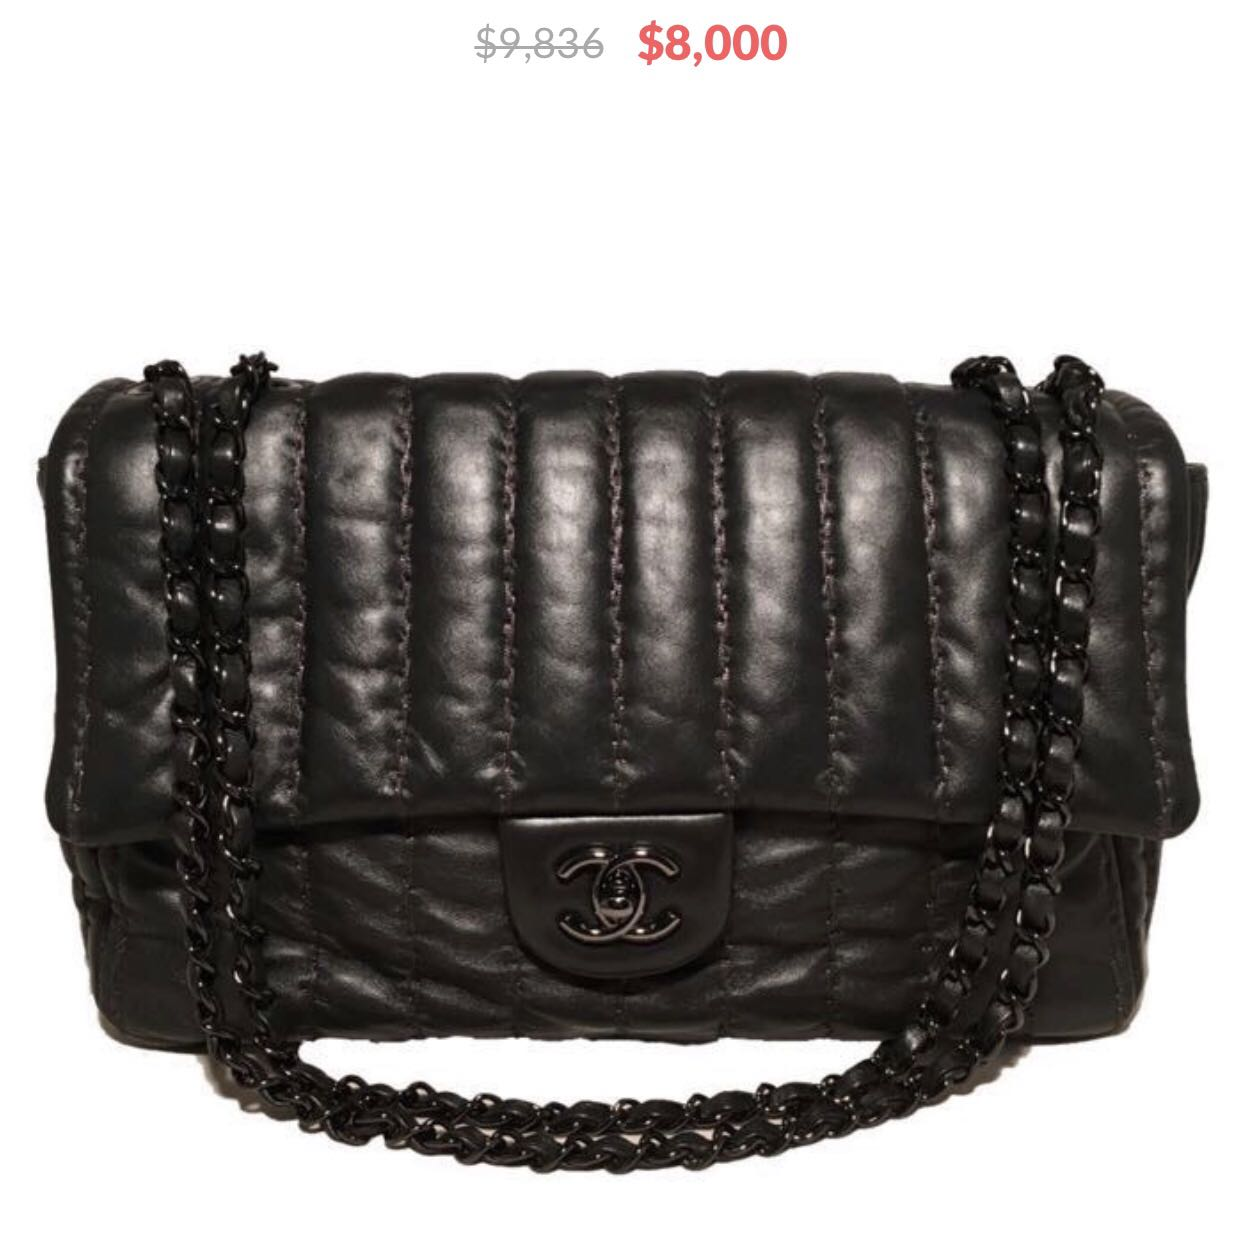 8fd61fcb5cd1 RARE! Chanel Black Shimmery Leather Striped Quilted Jumbo Classic Flap,  Luxury, Bags & Wallets, Handbags on Carousell